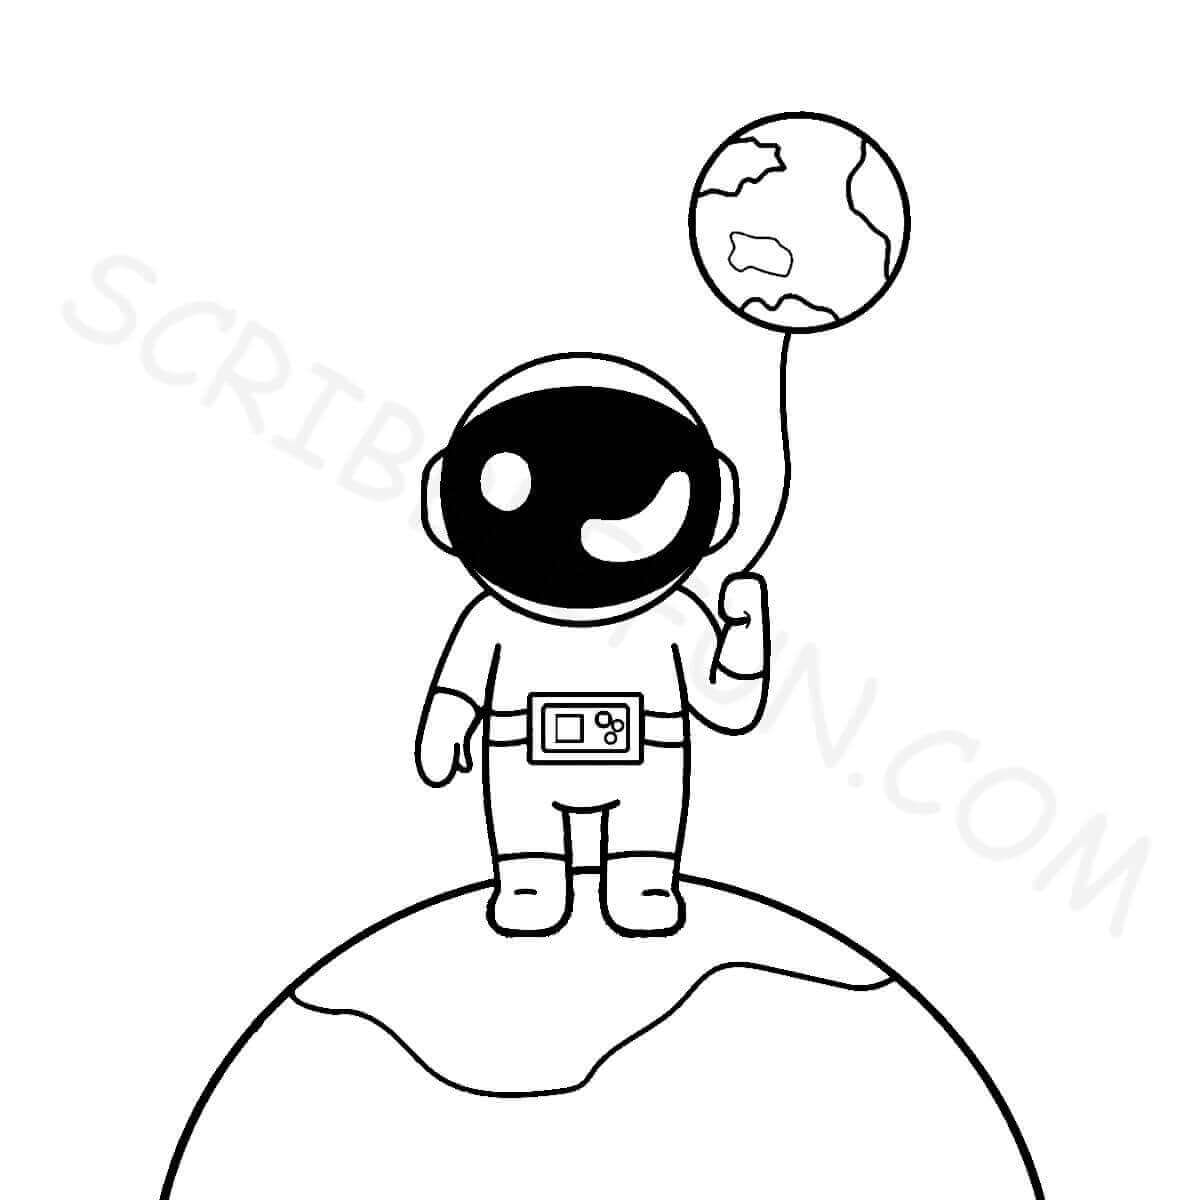 An astronaut with earth shaped balloon